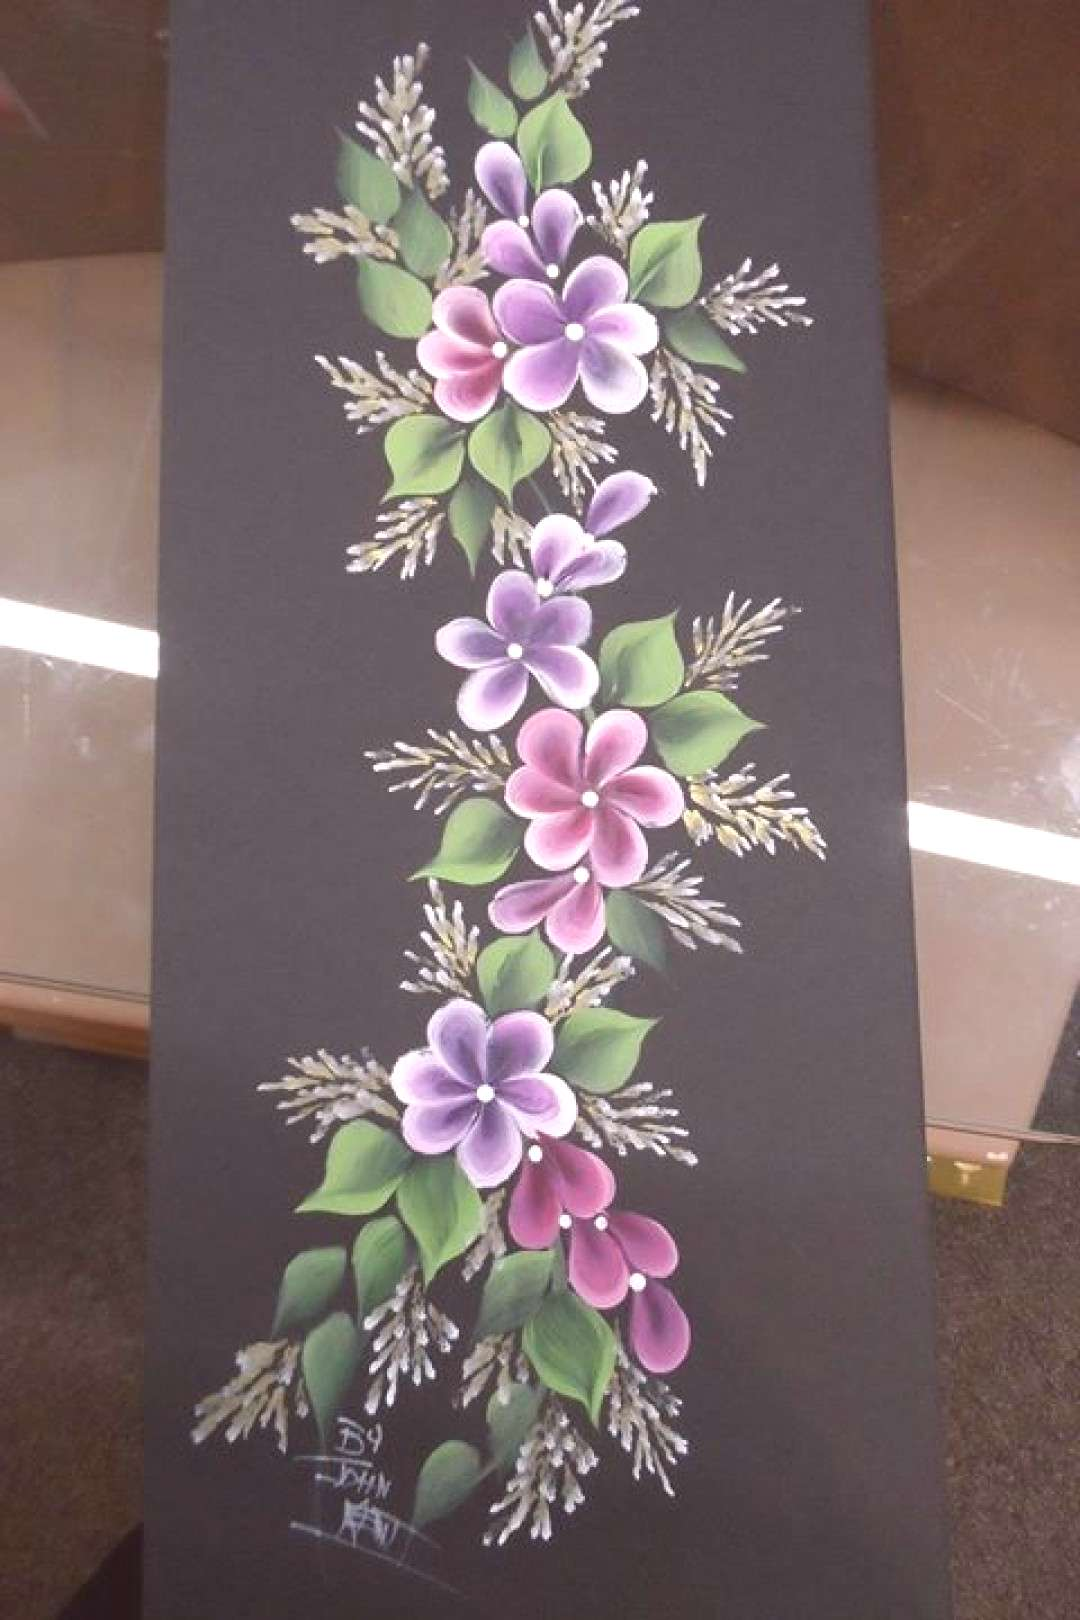 Flowers One-Stroke Painting Class